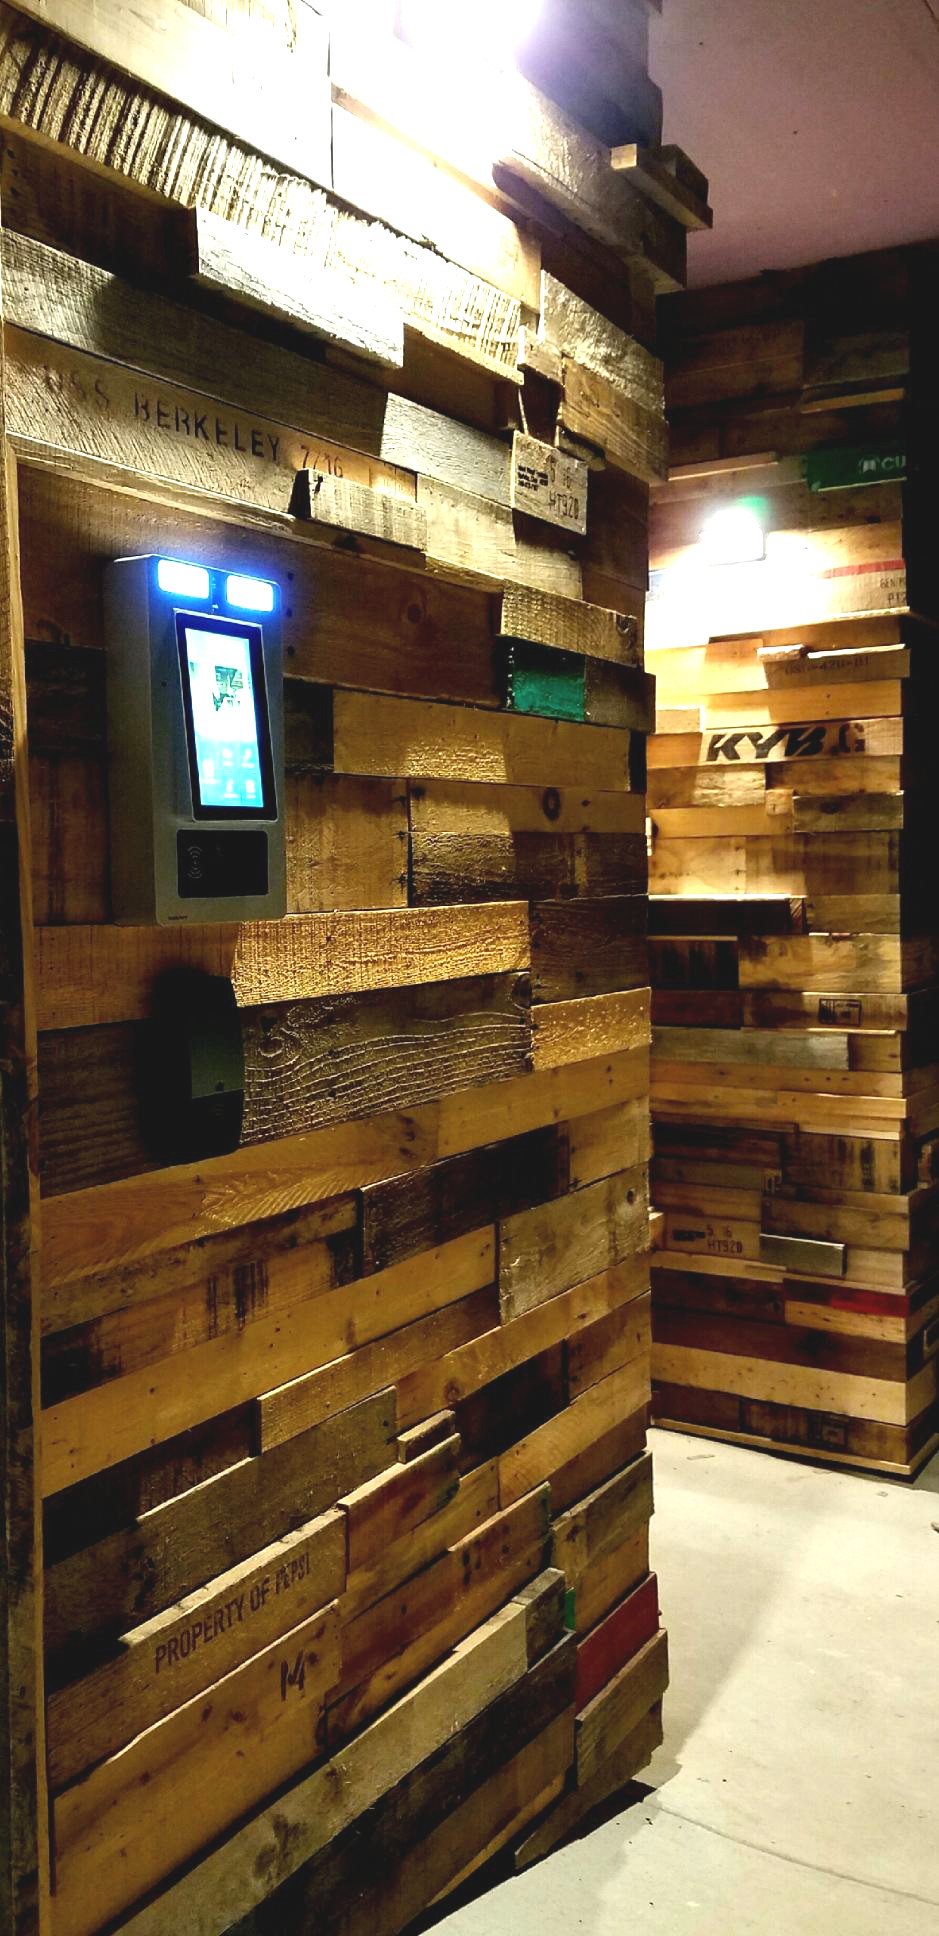 Reclaimed Pallet Entry Wall with Building Access Control System FUSA Designs #livingcityarch